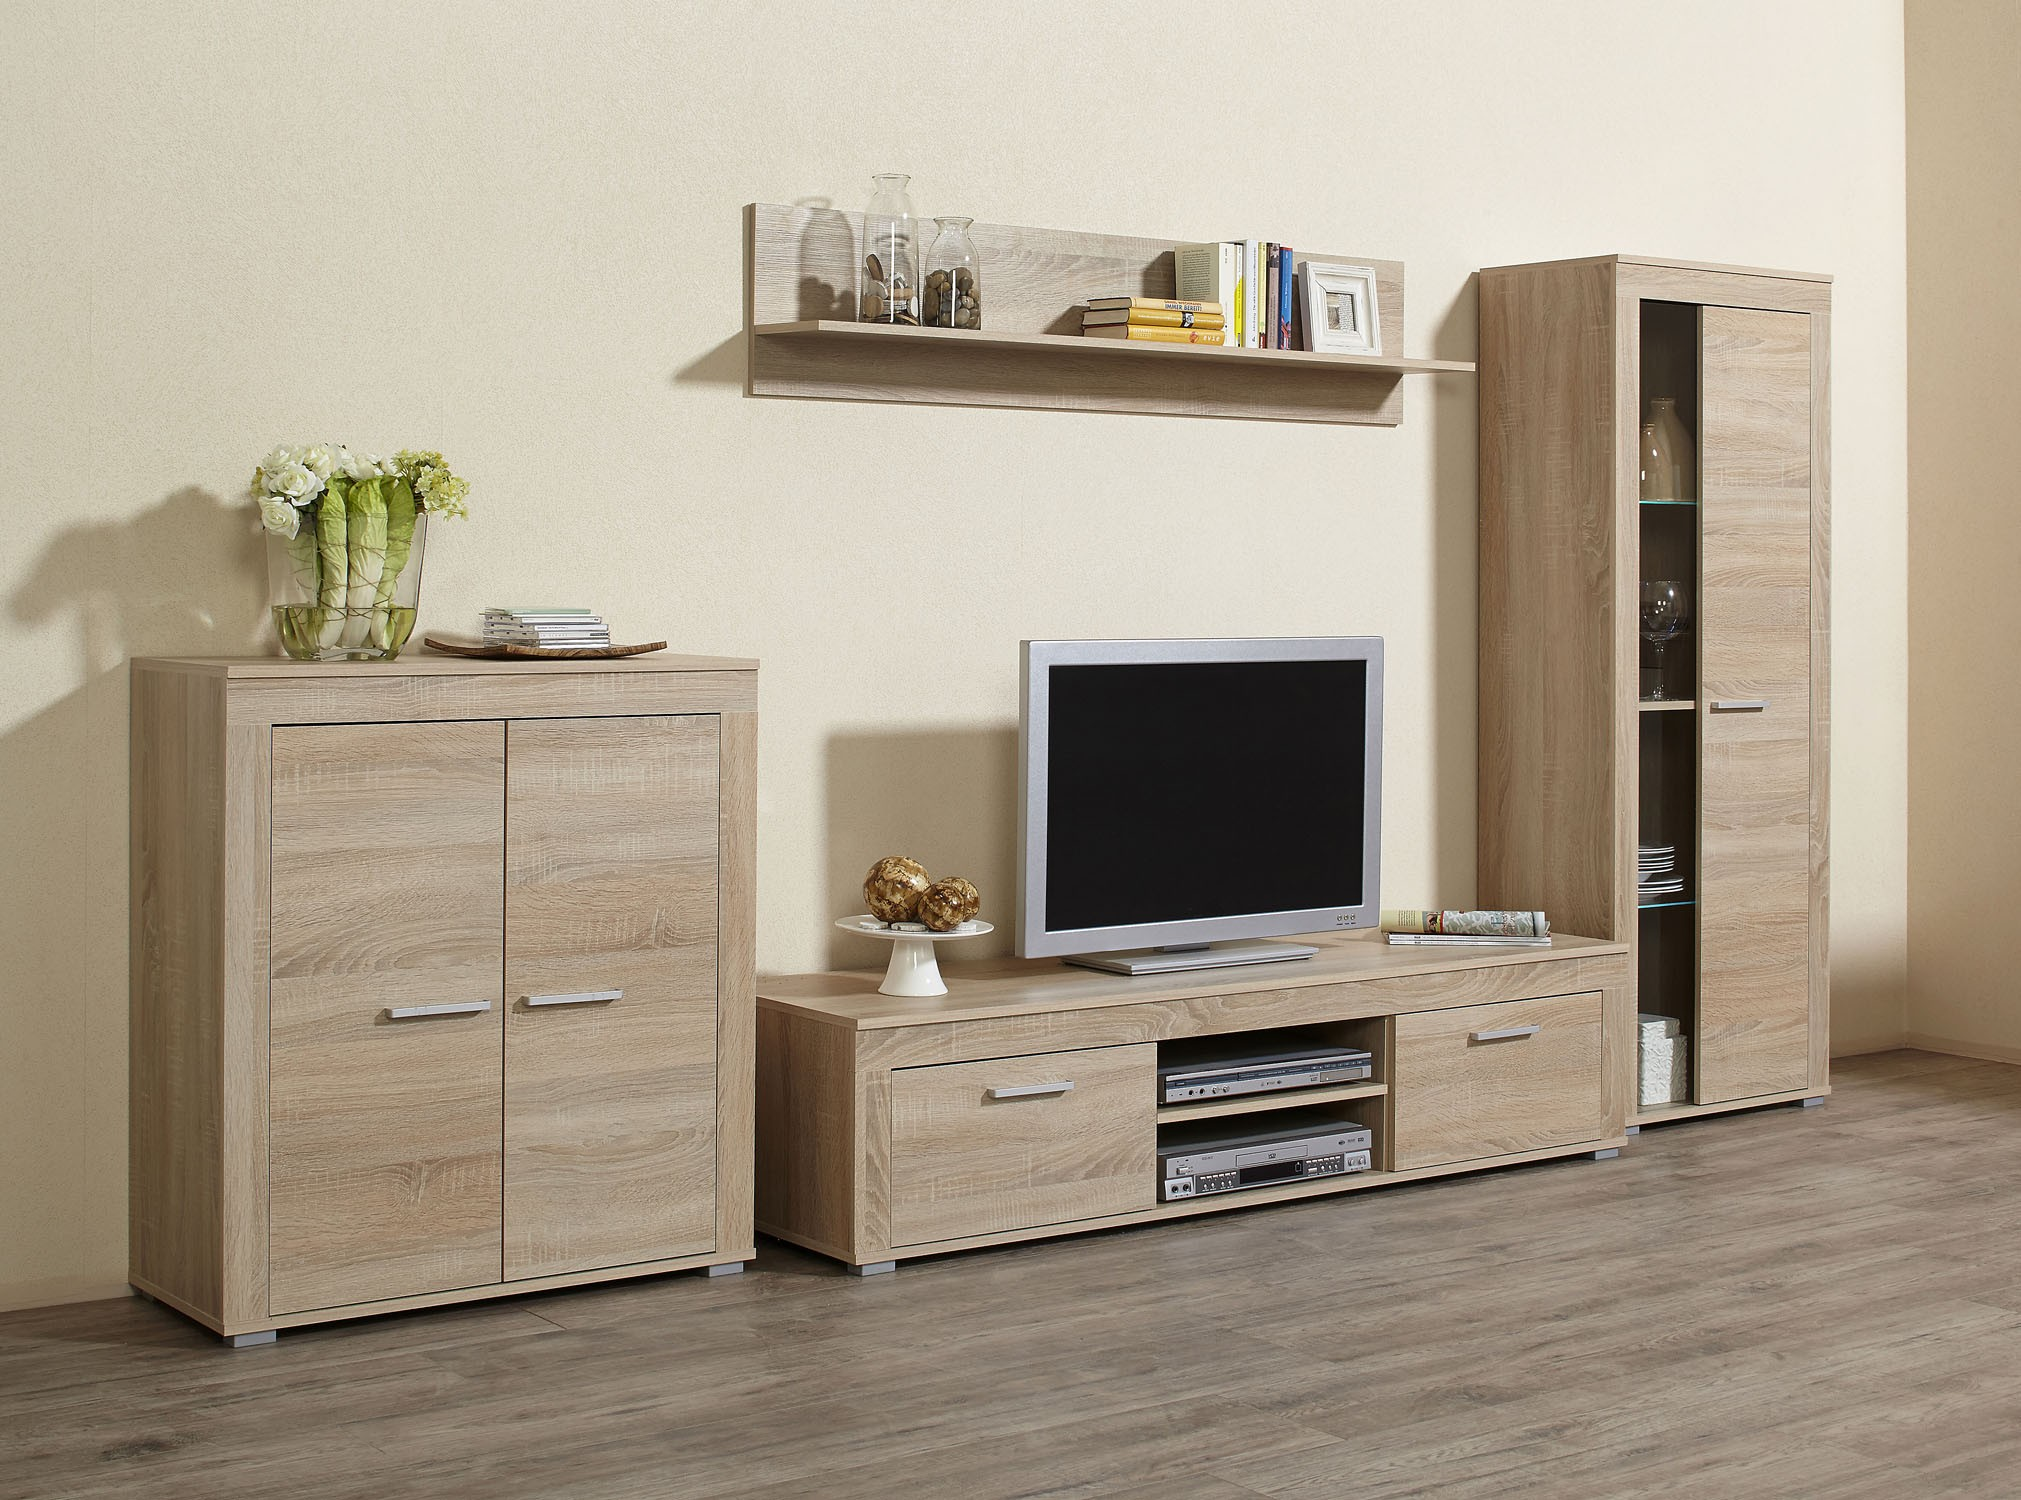 4tlg wohnwand anbauwand mod w038 es sonoma eiche s gerau h c m bel. Black Bedroom Furniture Sets. Home Design Ideas